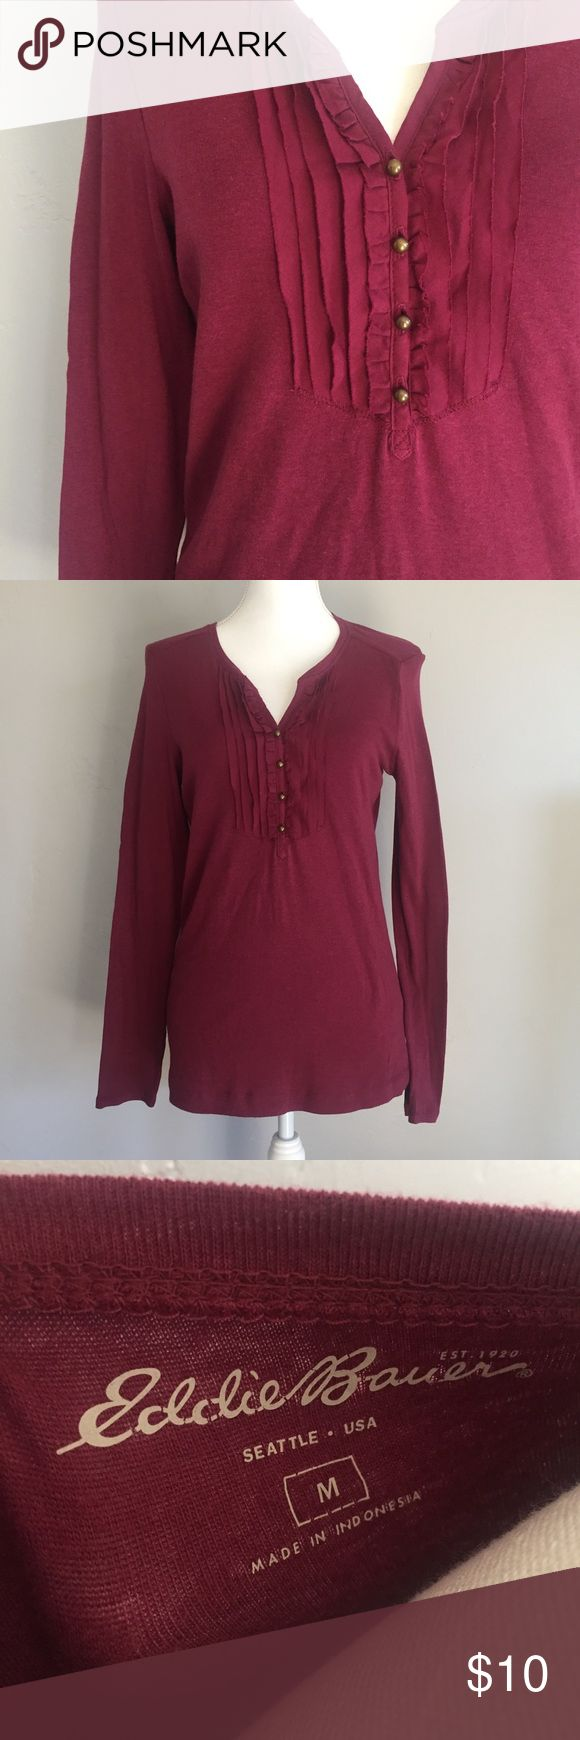 Eddie Bauer long sleeve Henley NWT long sleeved Henley from Eddie Bauer. Color is called wine. Ruffle features and four buttons down neckline. Measures approx 26 inches in length and 18 inches across the bust. Eddie Bauer Tops Tees - Long Sleeve